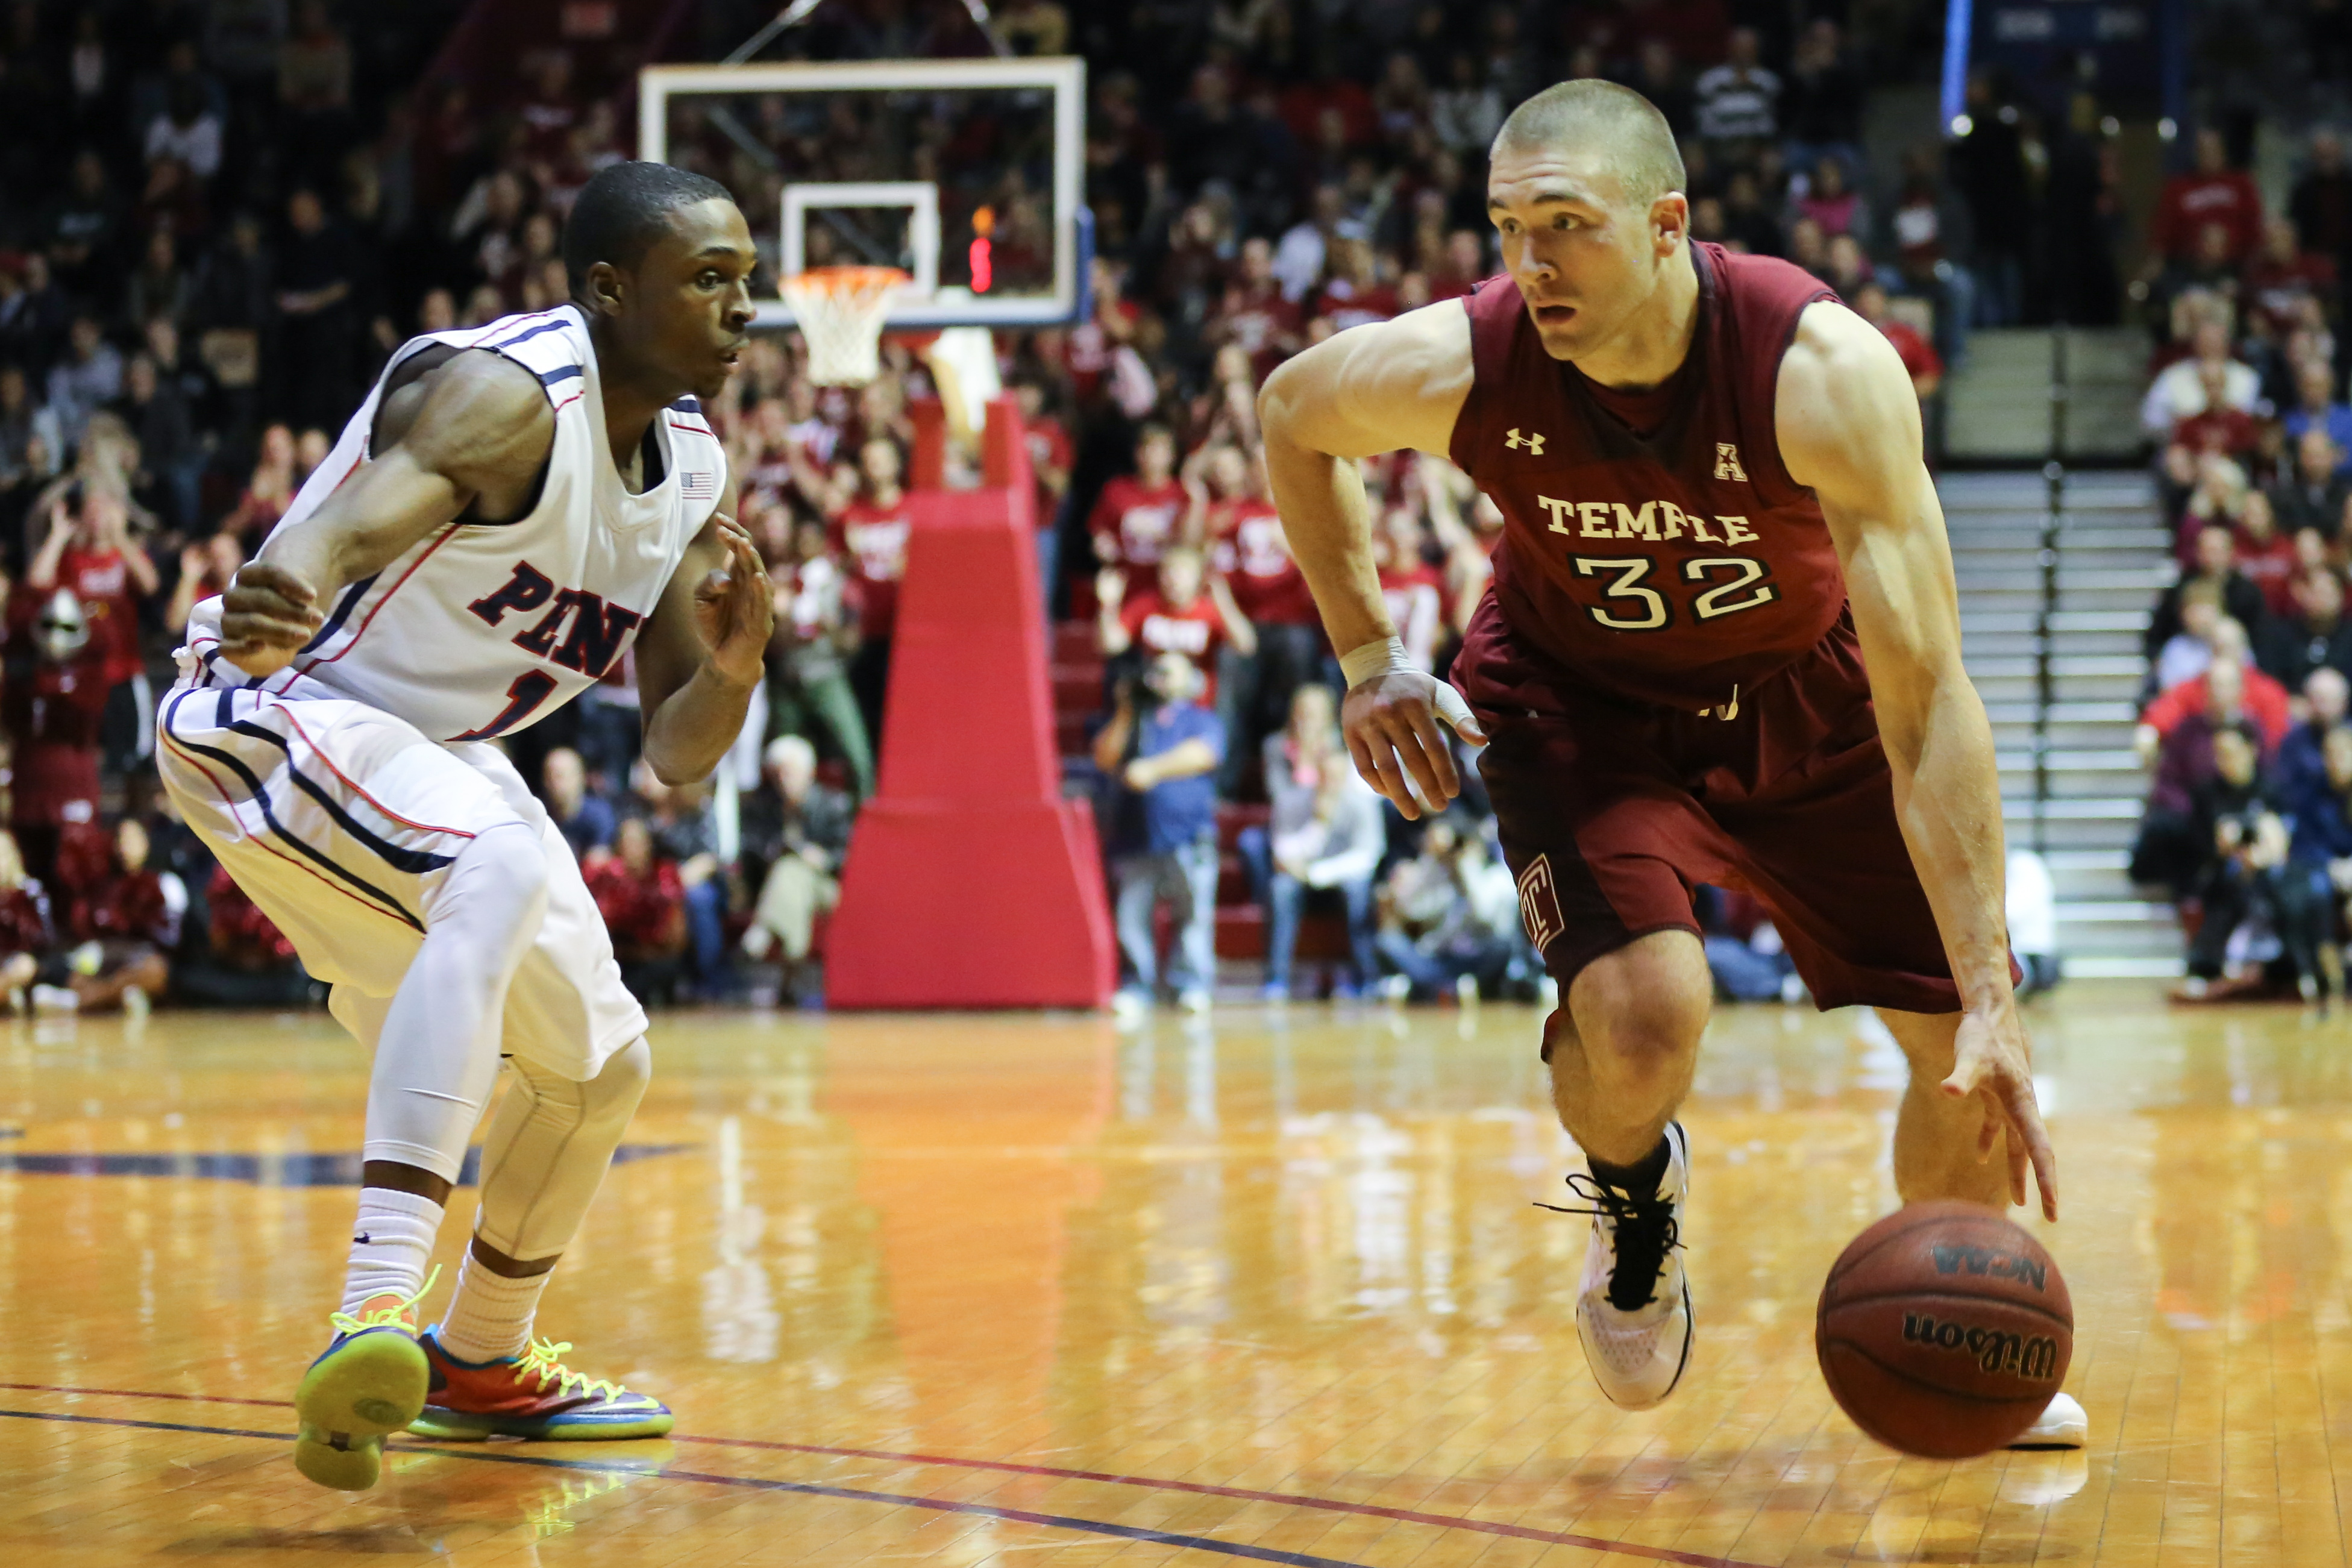 Senior guard Dalton Pepper (right) set career highs in points, rebounds and minutes. // HUA ZONG // TTN